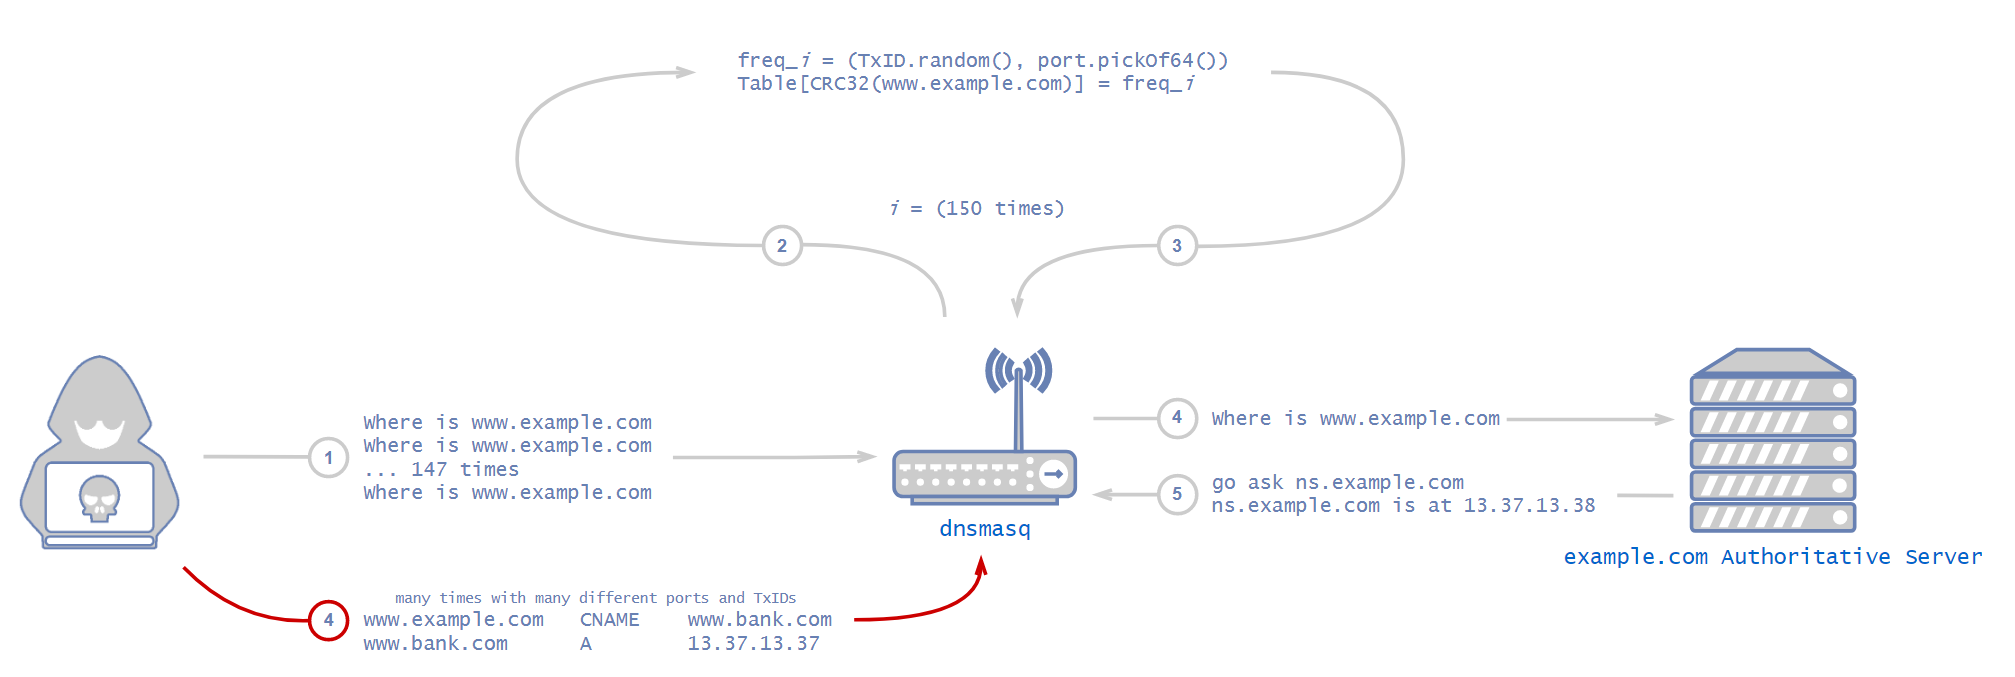 Figure 2. Cache poisoning attack on dnsmasq.